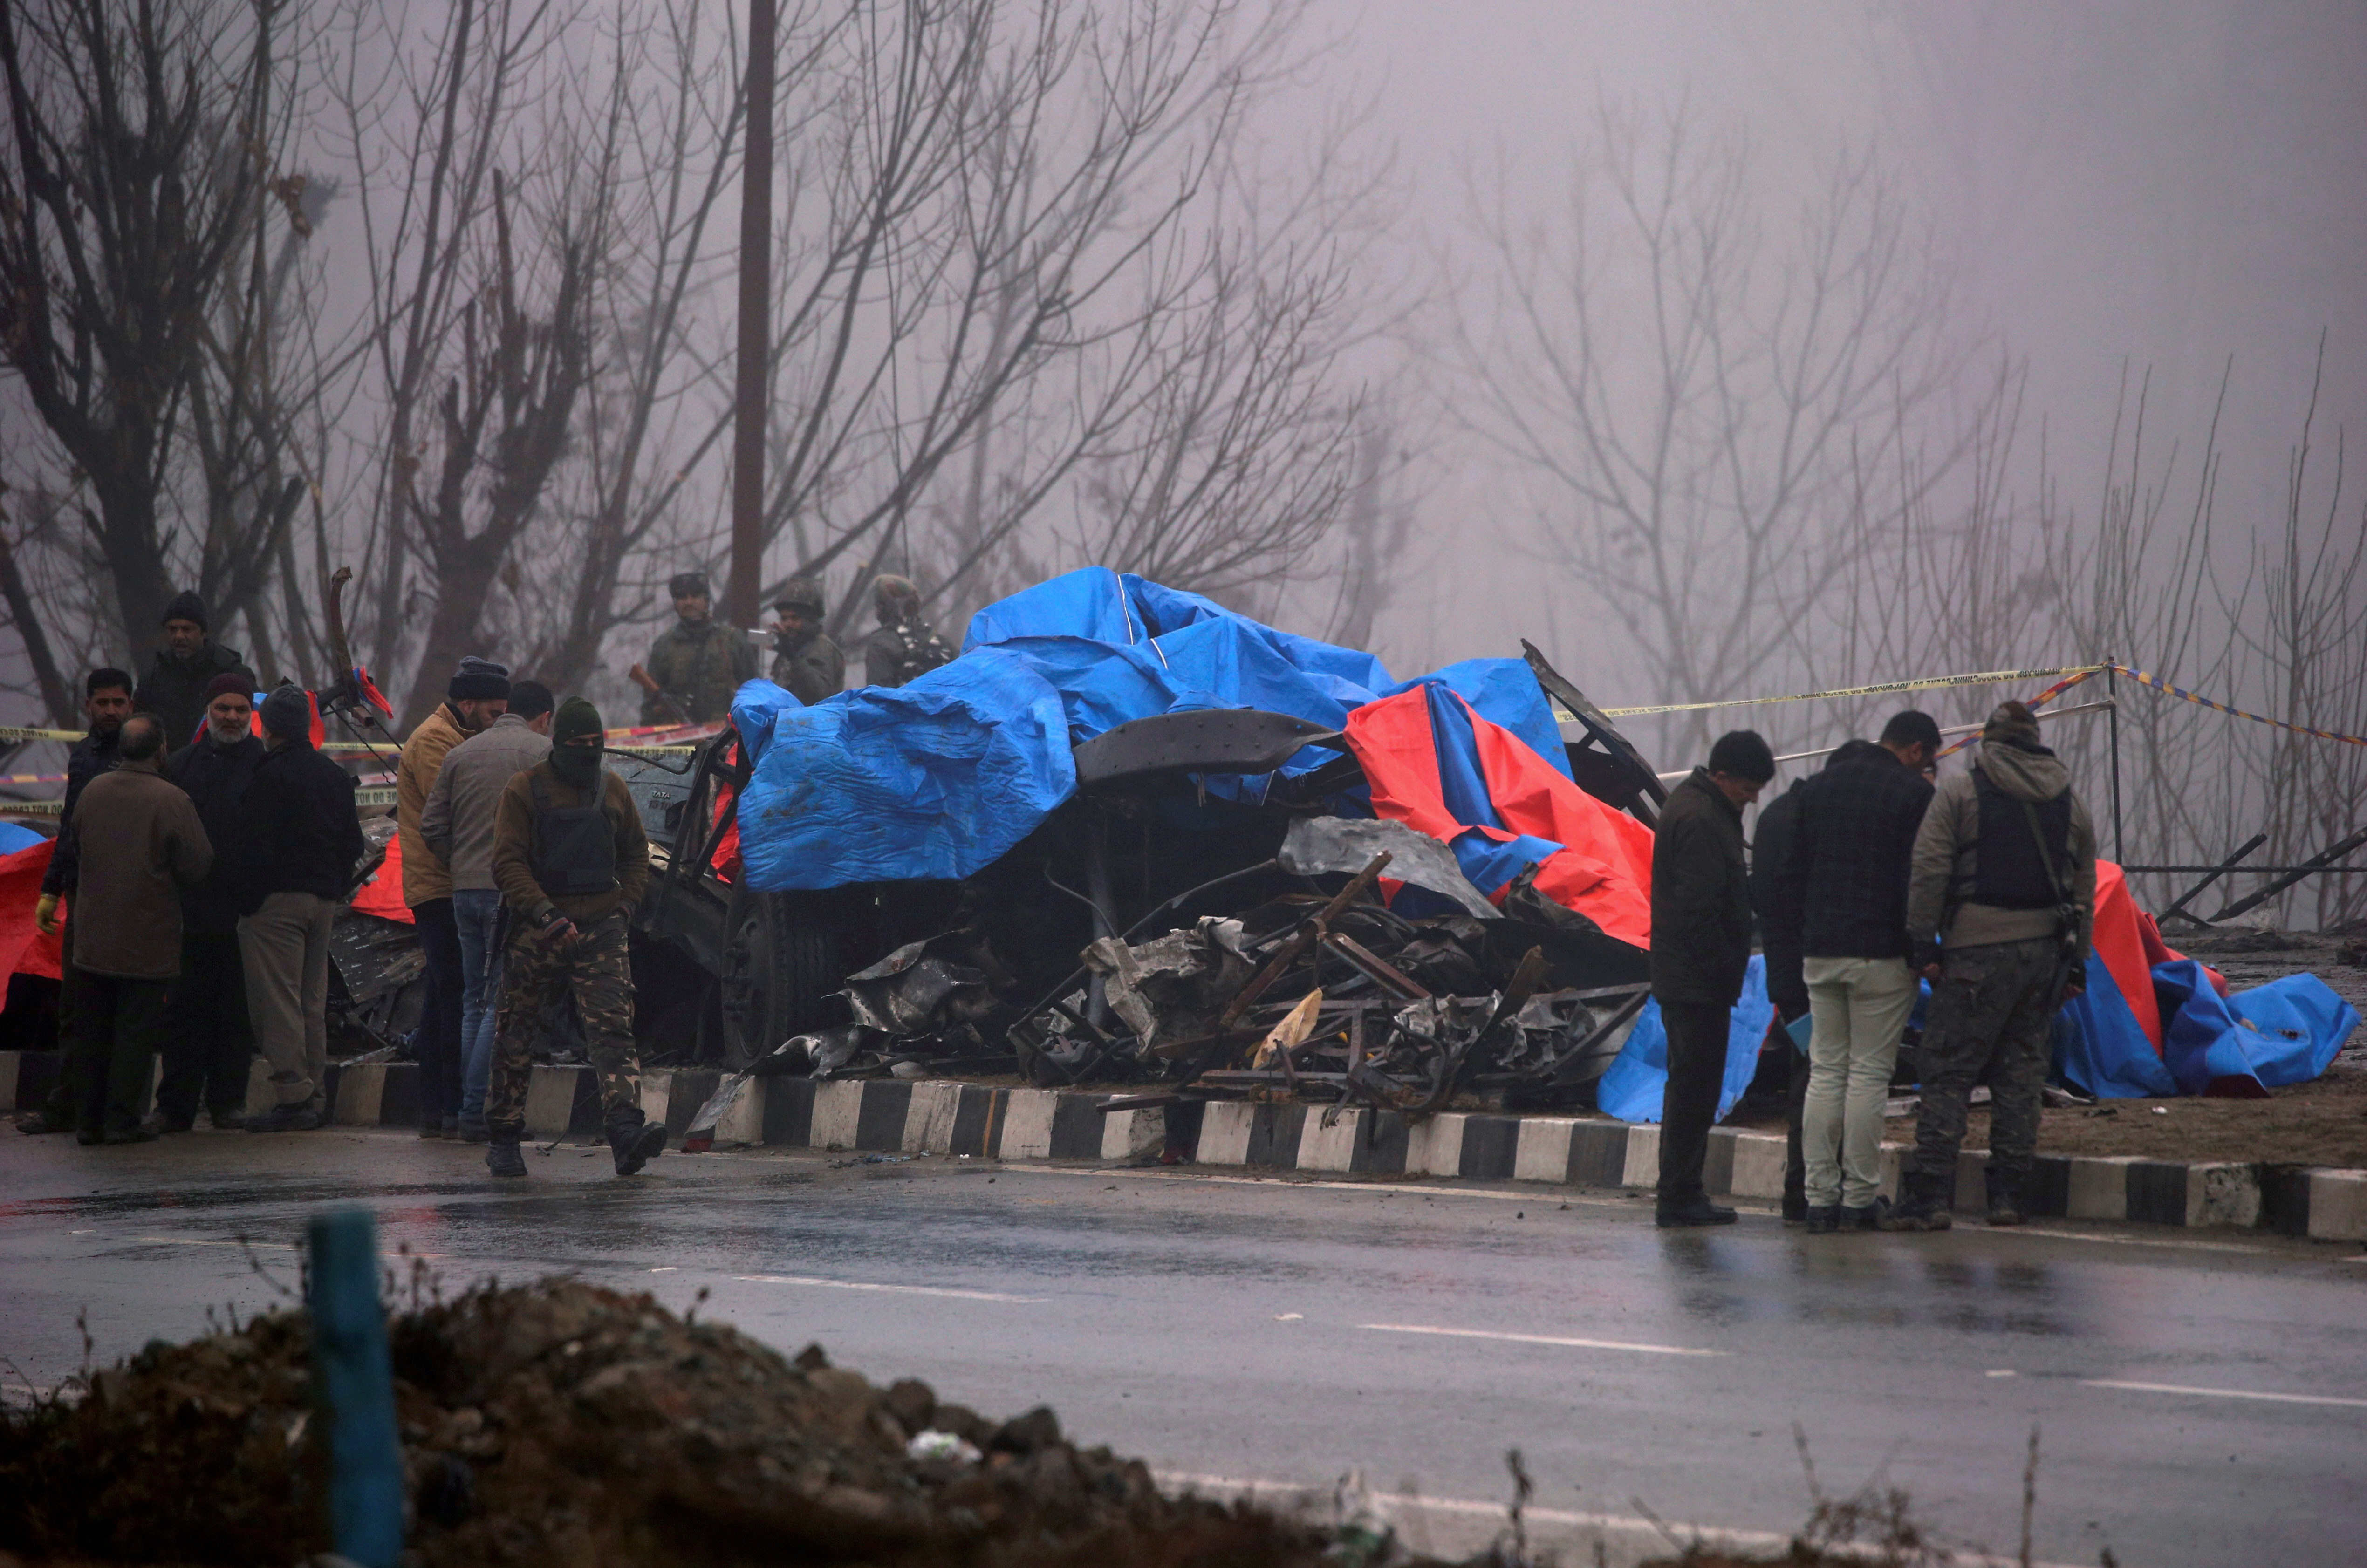 FILE PHOTO: Forensic officials inspect the wreckage of a bus after a suicide bomber rammed a car into the bus carrying Central Reserve Police Force (CRPF) personnel on Thursday, in Lethpora in south Kashmir's Pulwama district, February 15, 2019. REUTERS/Danish Ismail/File Photo